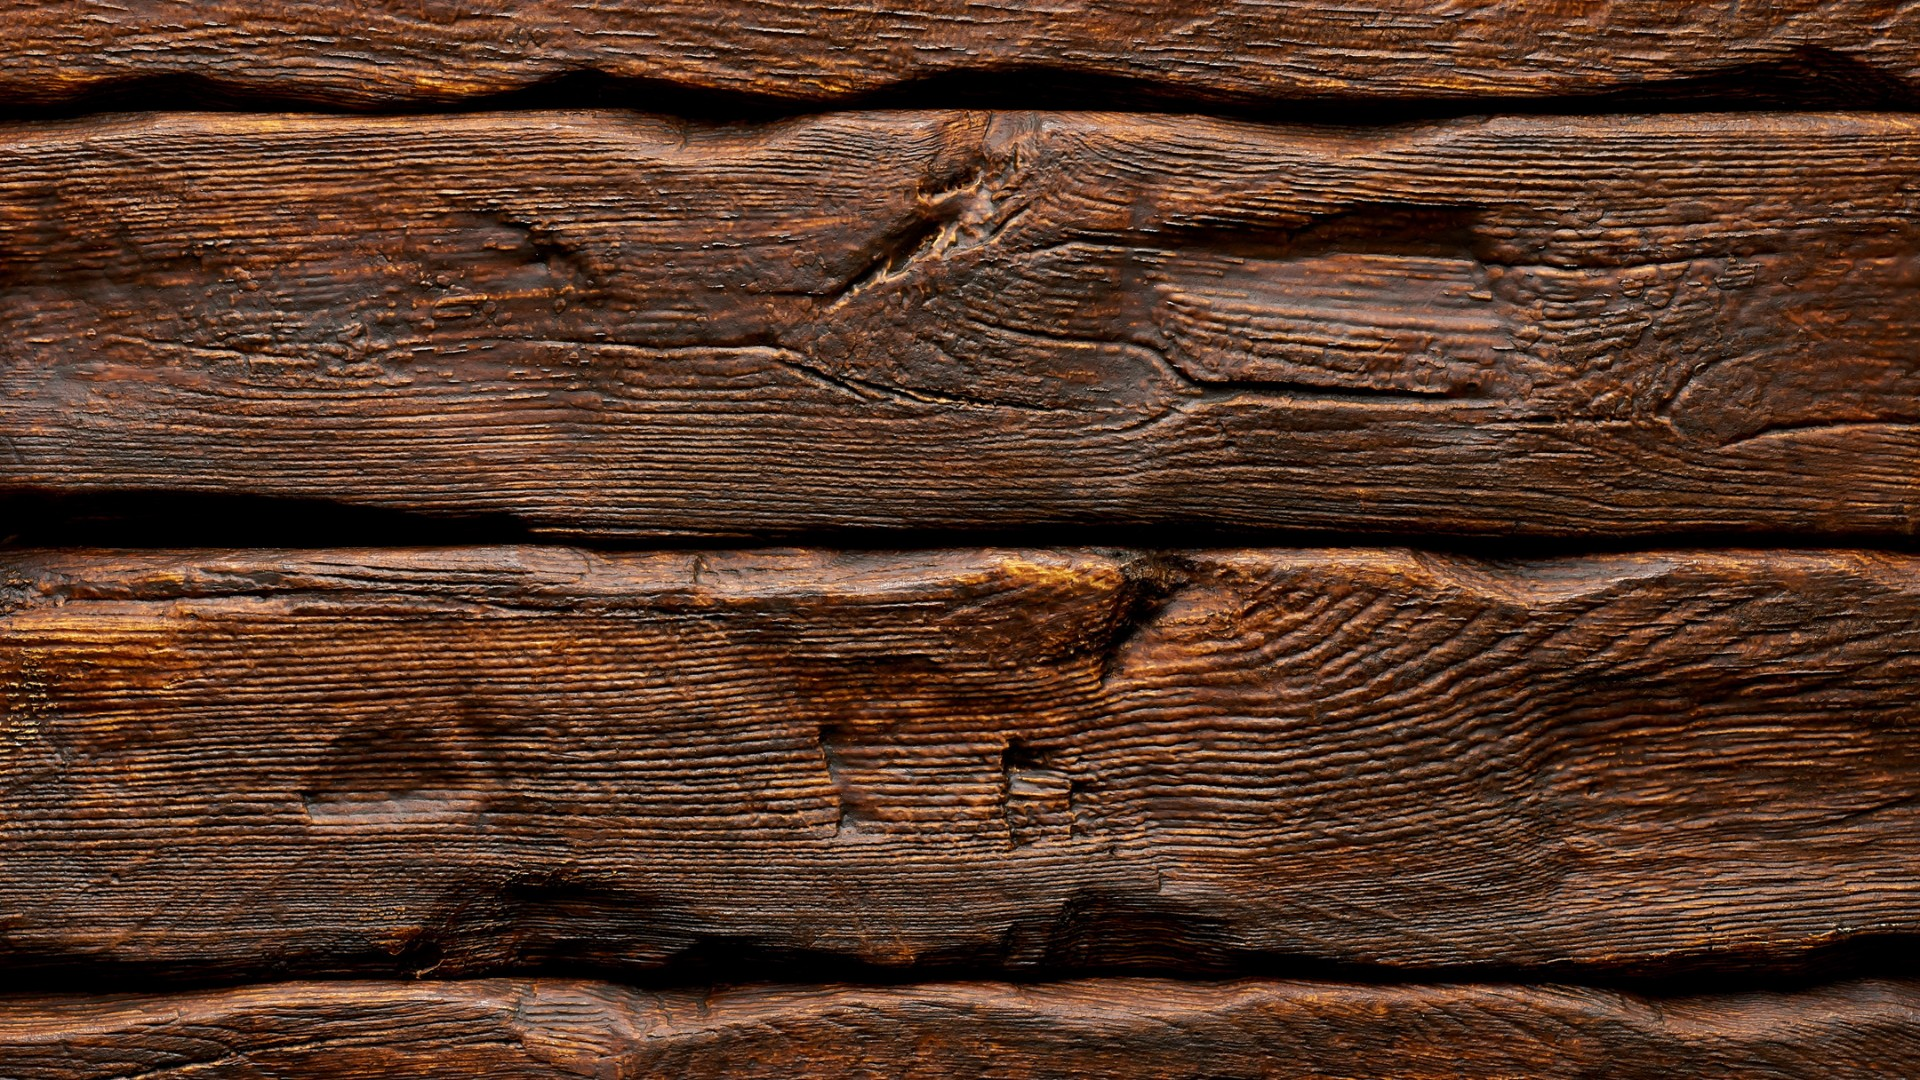 Wooden Texture Wallpaper | Wallpaper Studio 10 | Tens of thousands ...